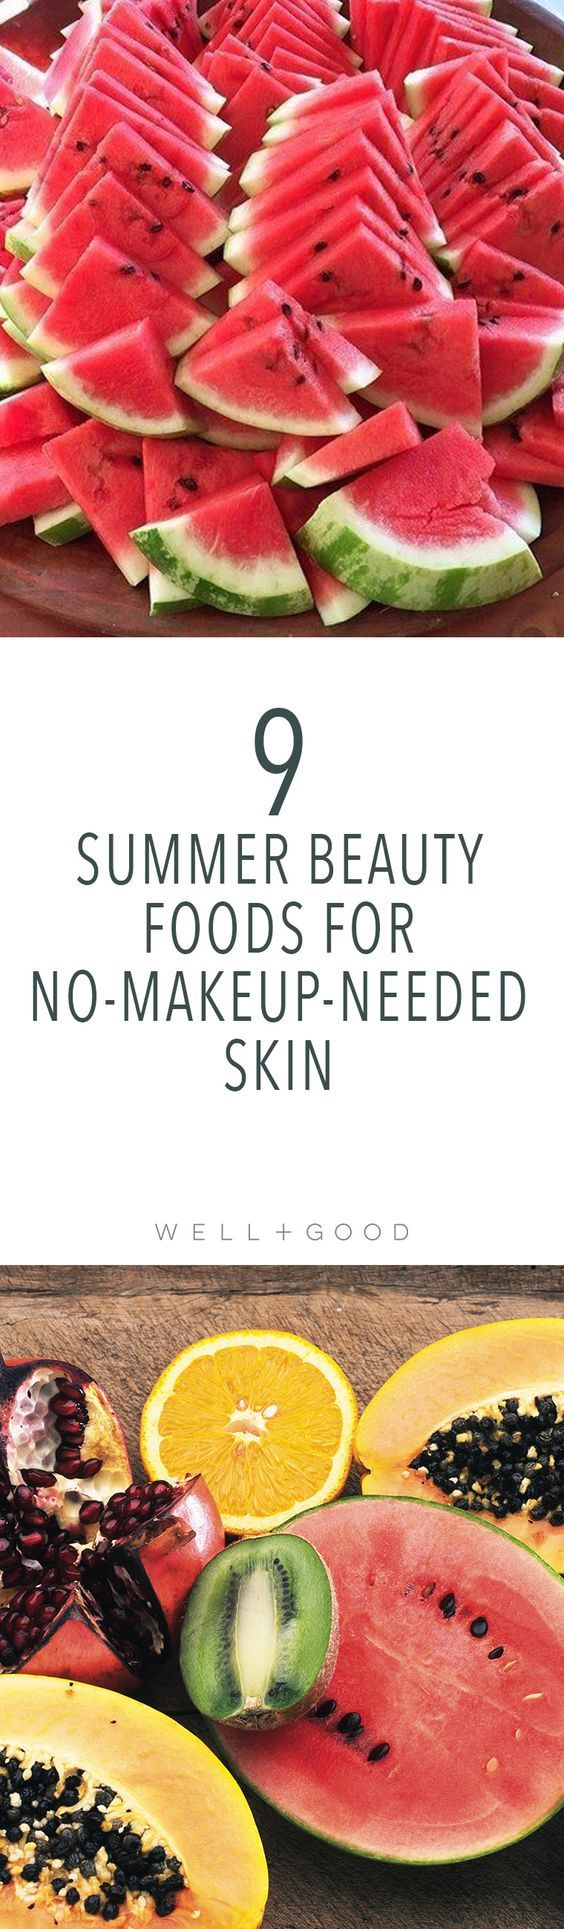 9 summer beauty foods for no-makeup-needed skin.